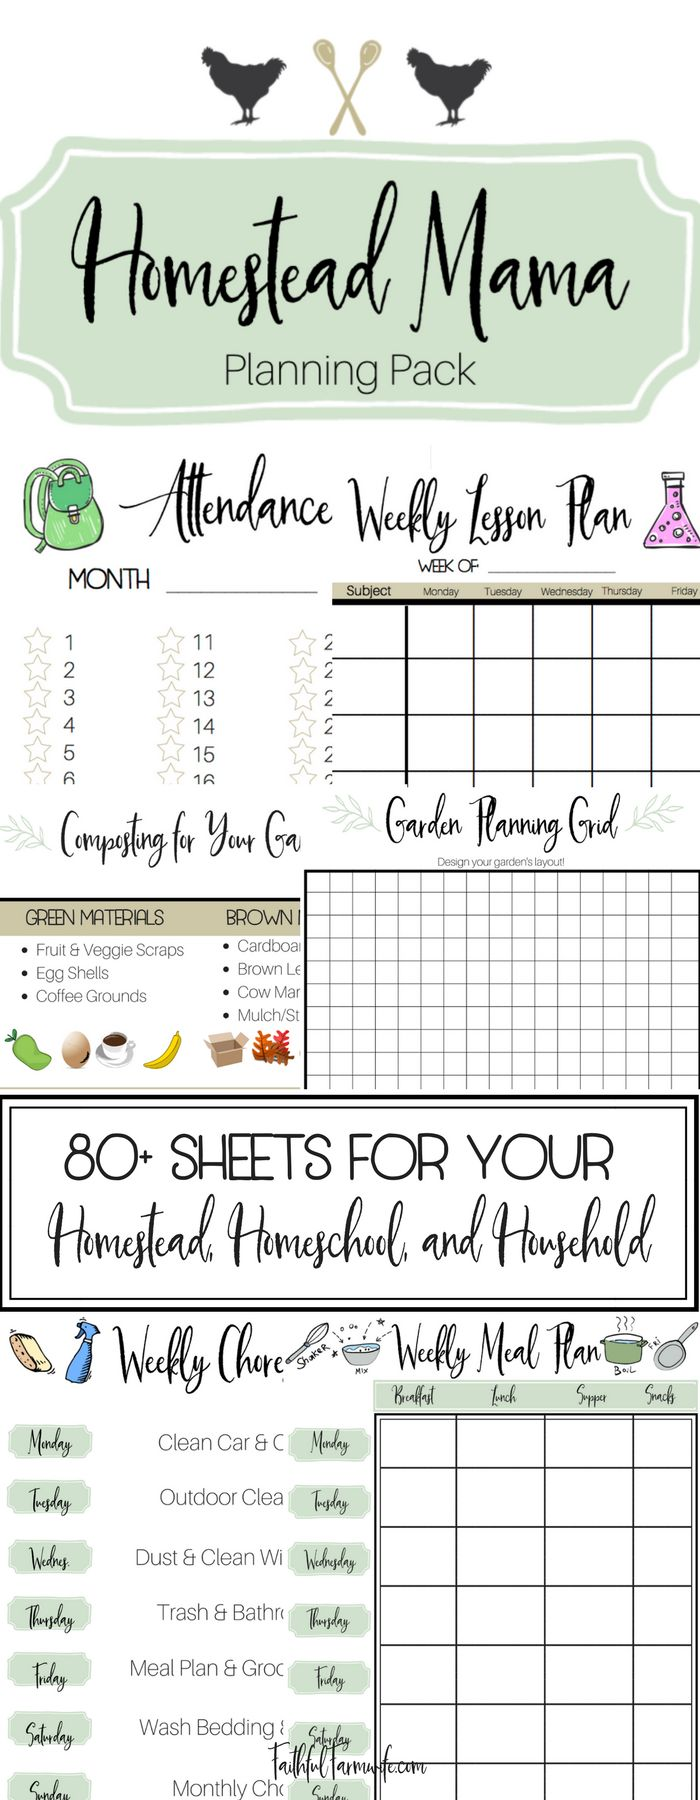 Being a homesteading mama can be tough. Make your many a little easier with this complete planning pack for your home, farm, & homeschool!